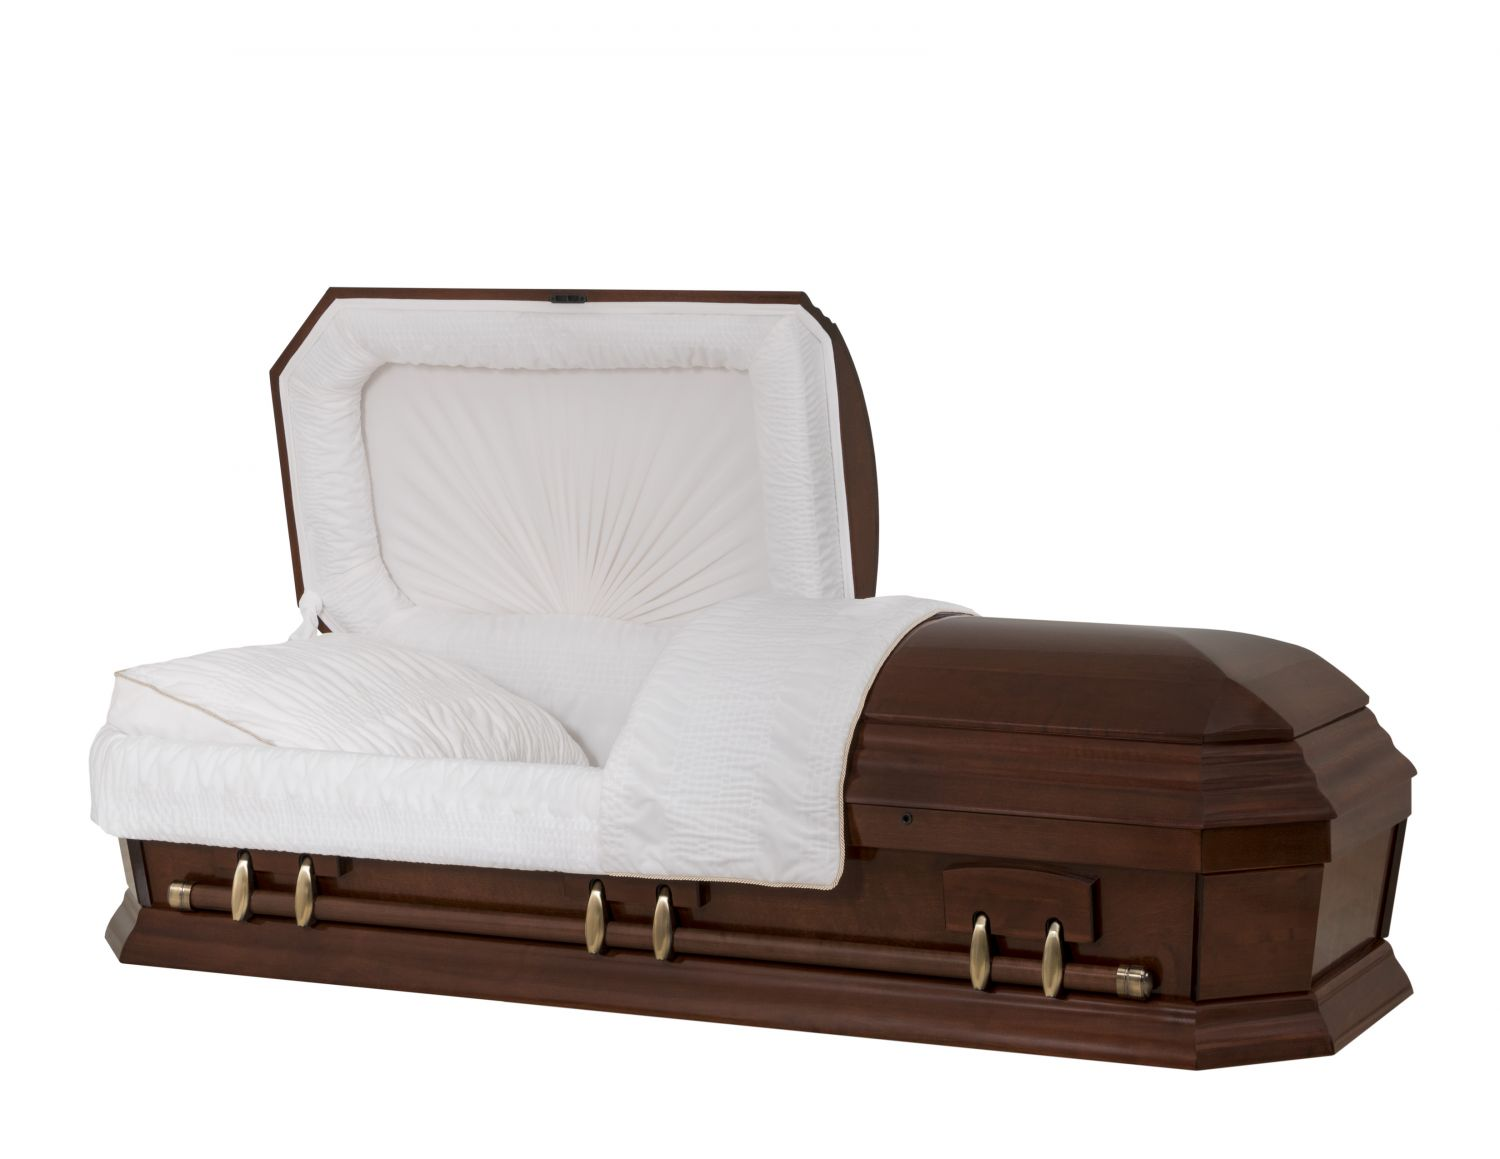 Concept Caskets 28262-00502-N POPLAR CASKET POLISHED NOVA VELVET CHERRY MATRESS YES W1260W-1    6 X 0 ANTIQUE GOLD